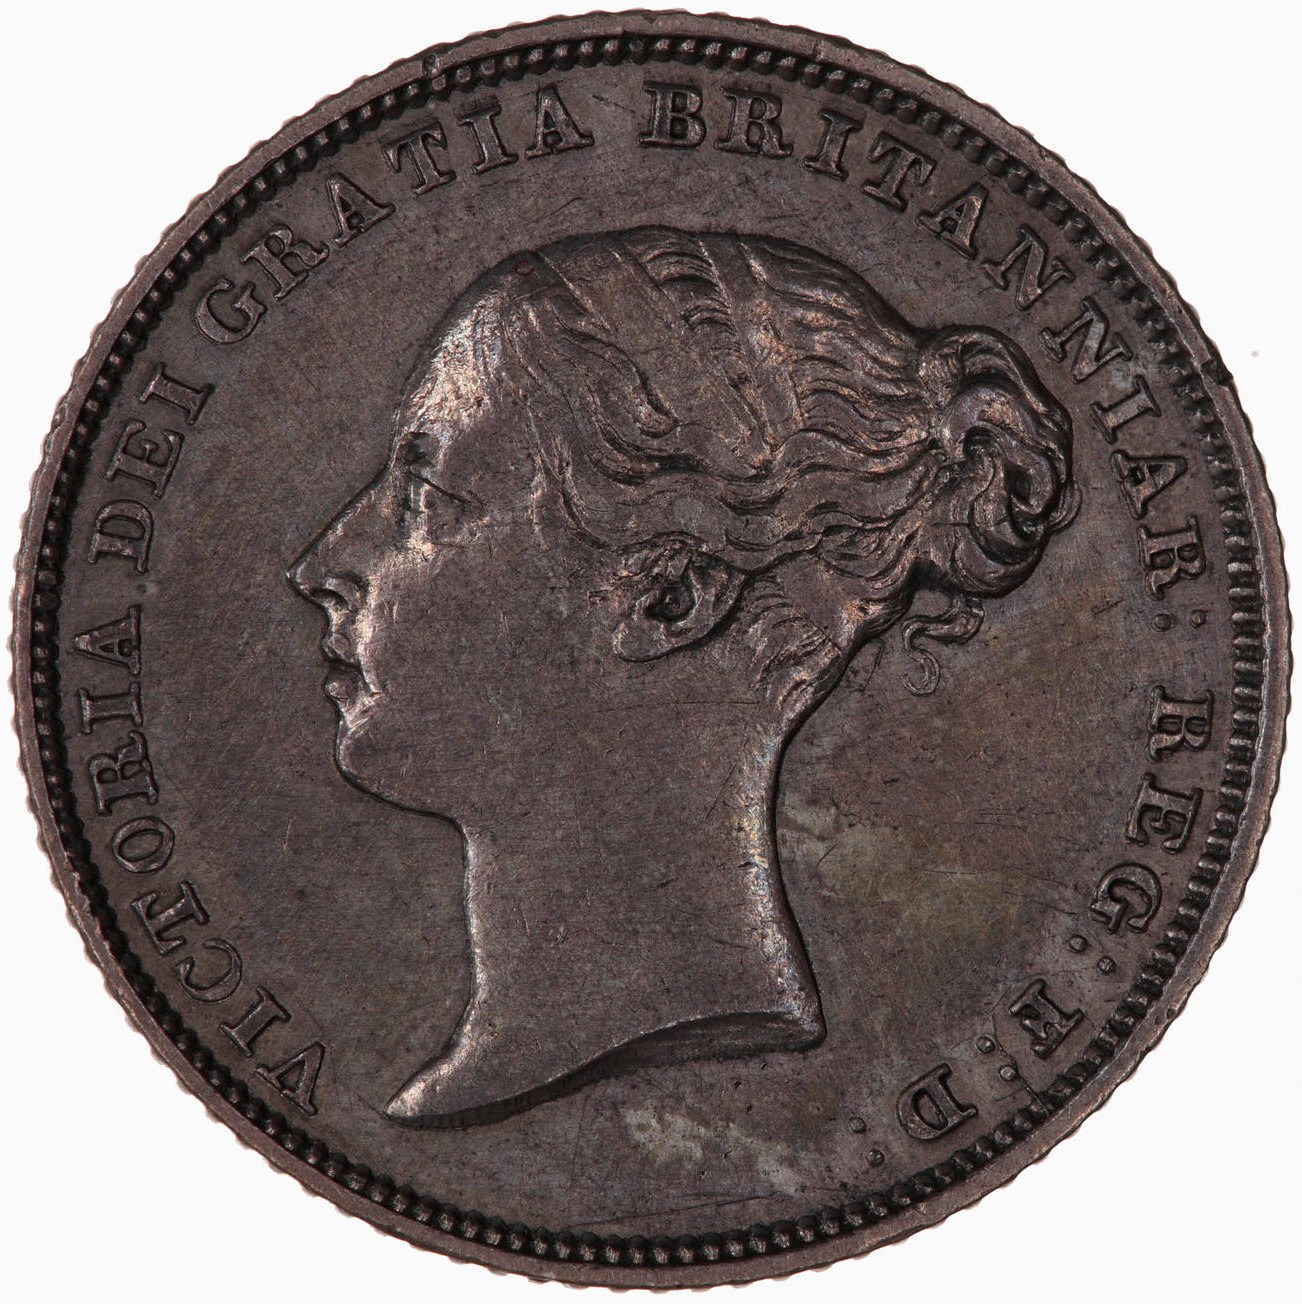 Sixpence: Photo Coin - Sixpence, Queen Victoria, Great Britain, 1838